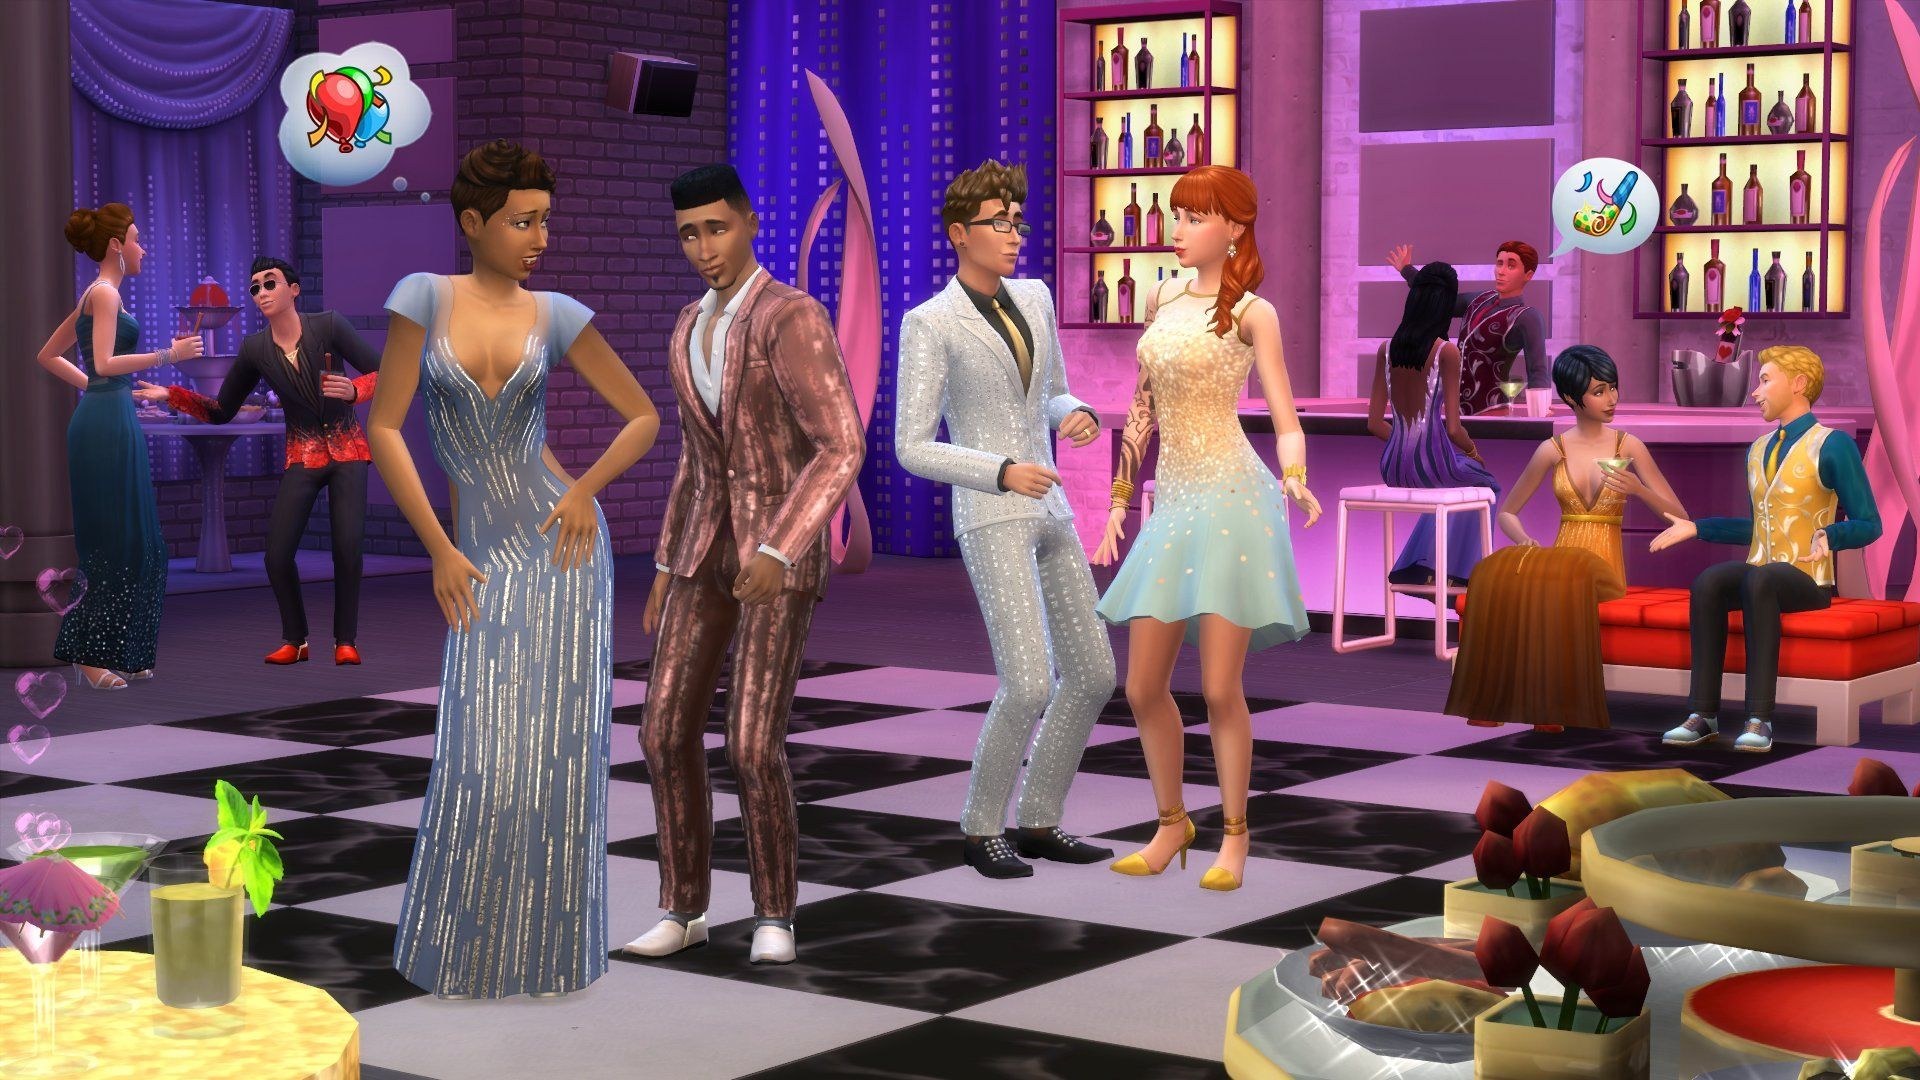 The Sims 4 Luxury Party Stuff Game Code] http